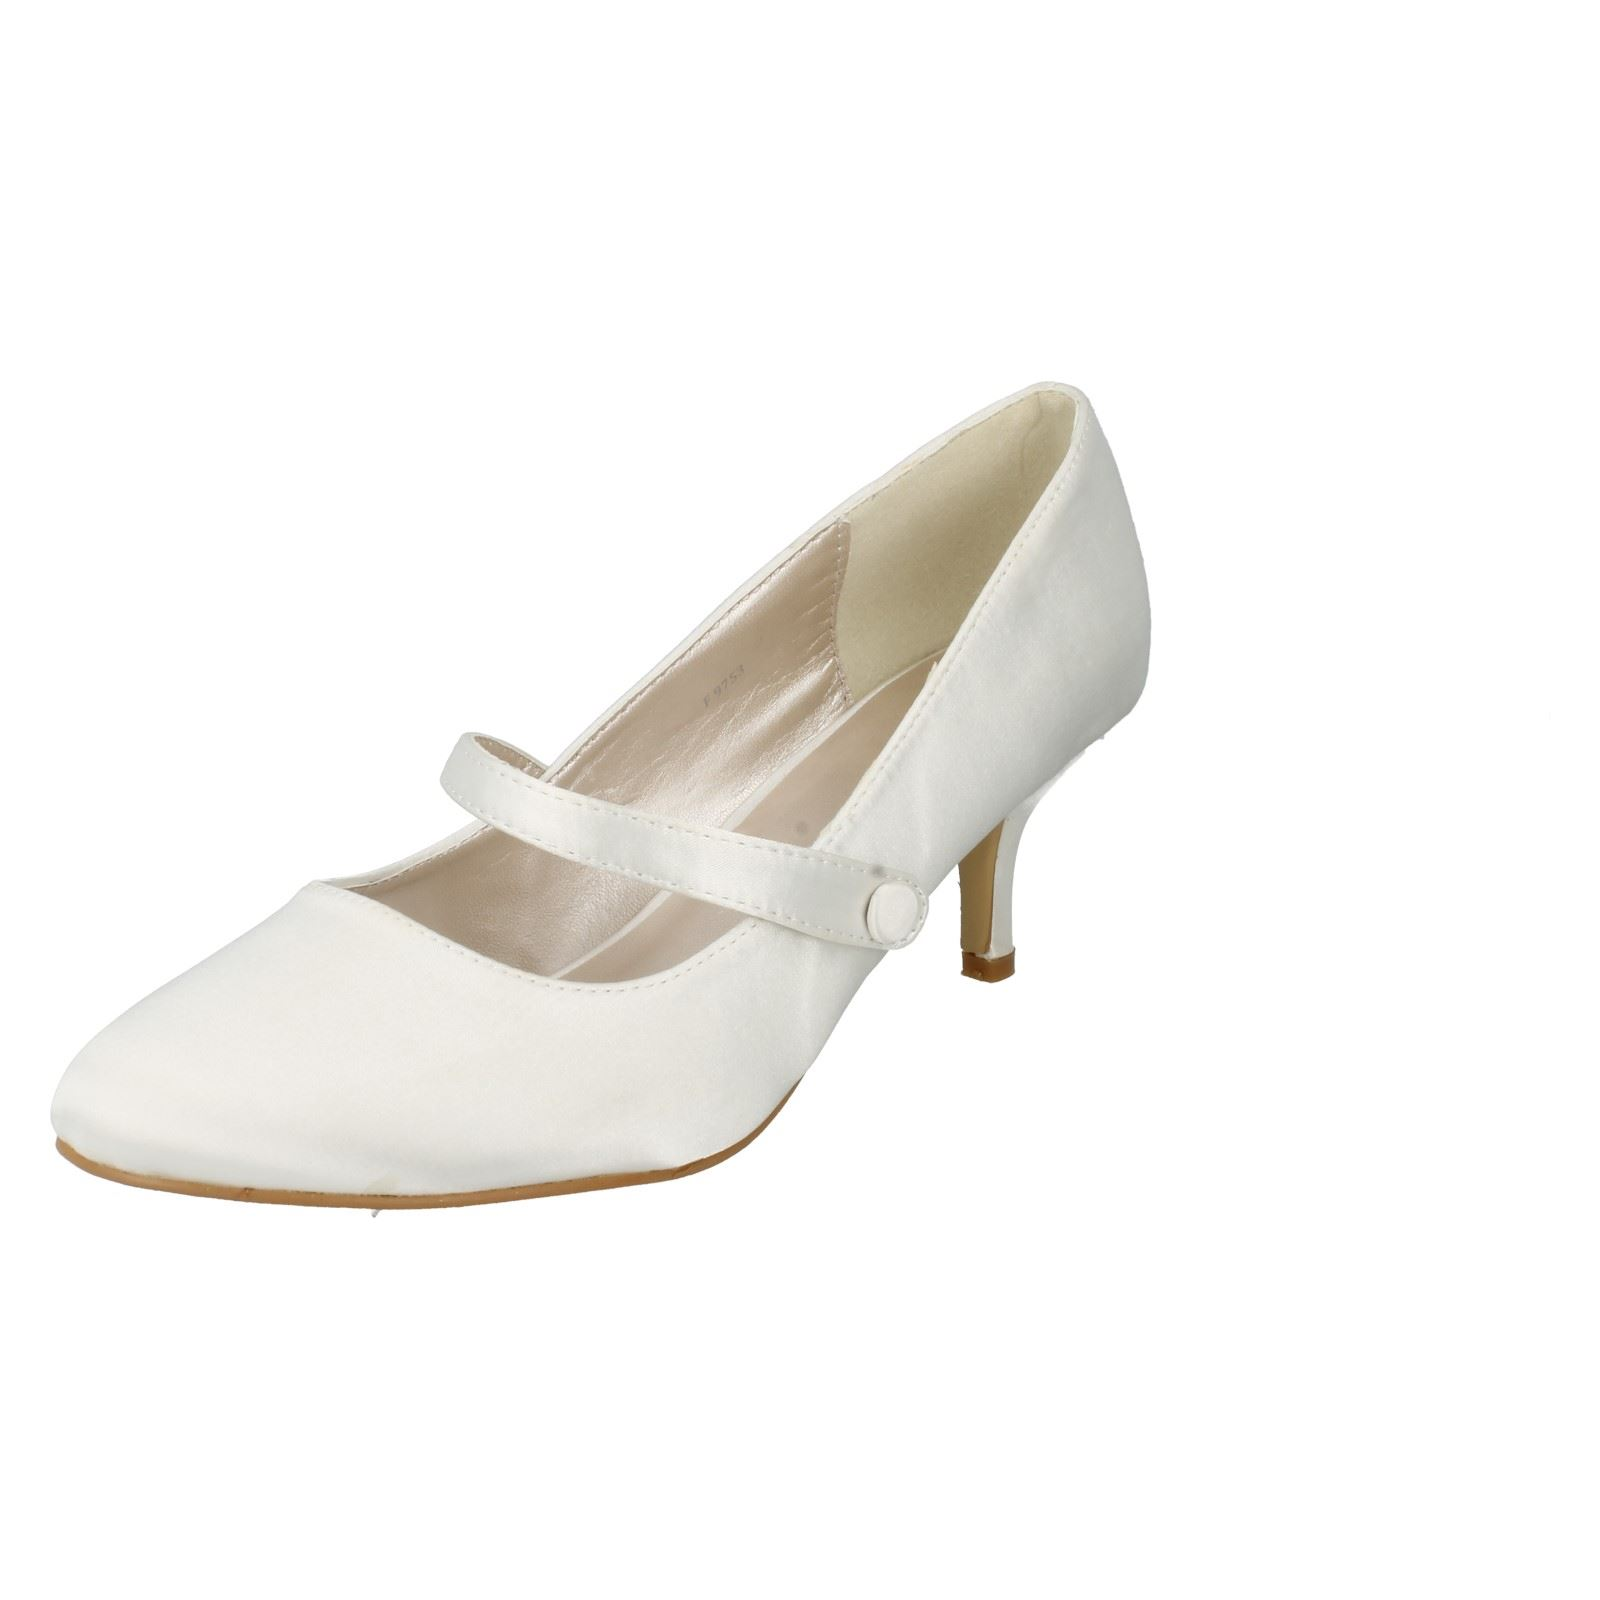 Ladies-Anne-Michelle-Court-Shoes-Style-F9753